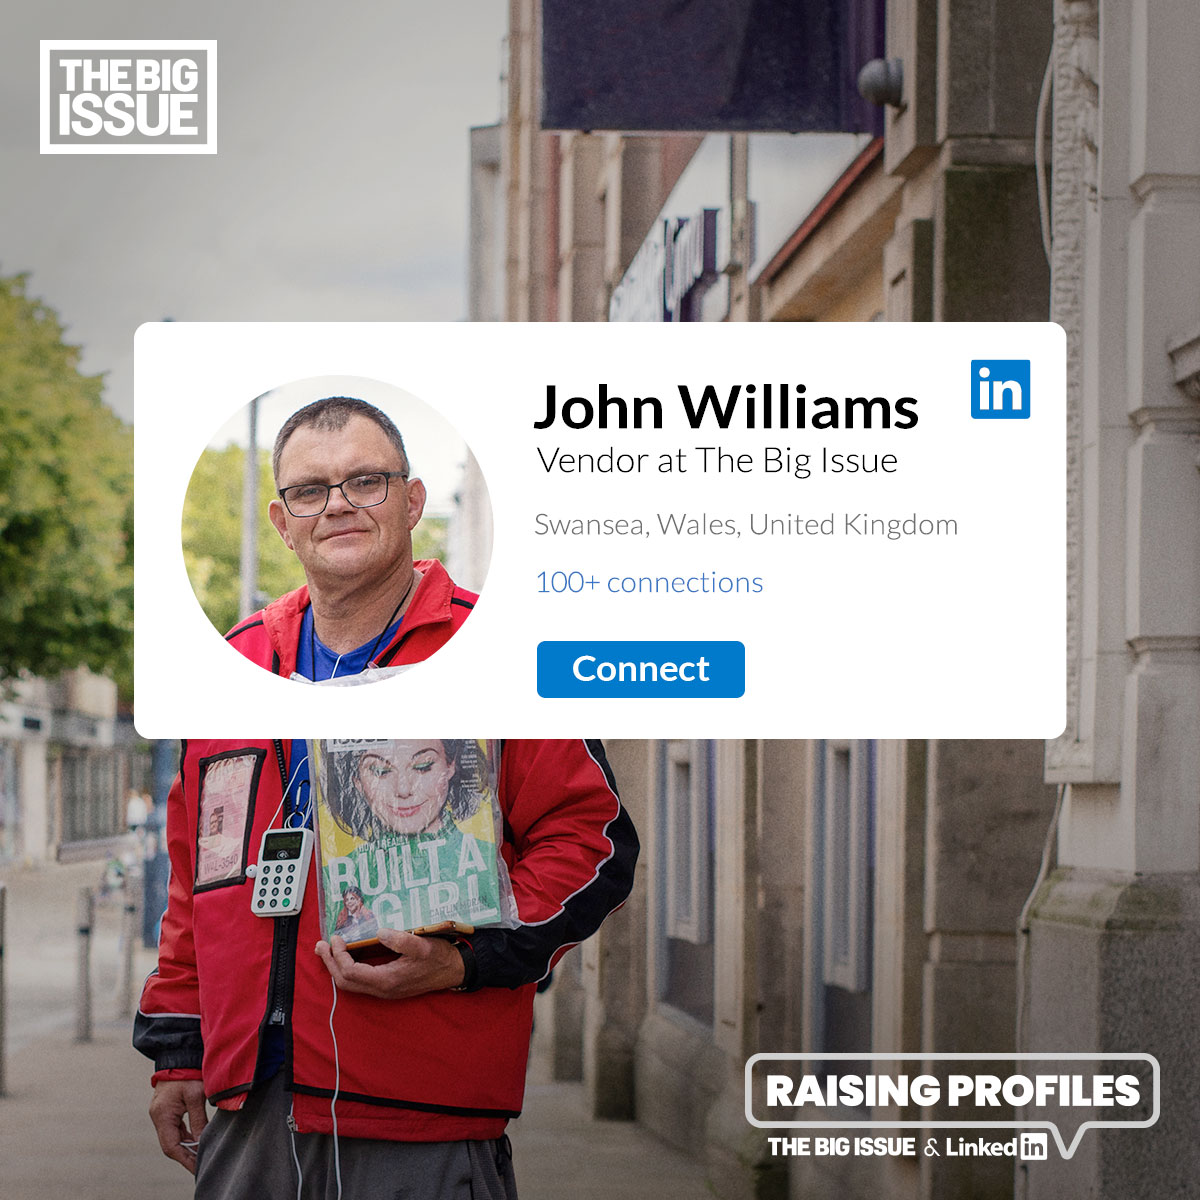 The Big Issue vendor - John Williams